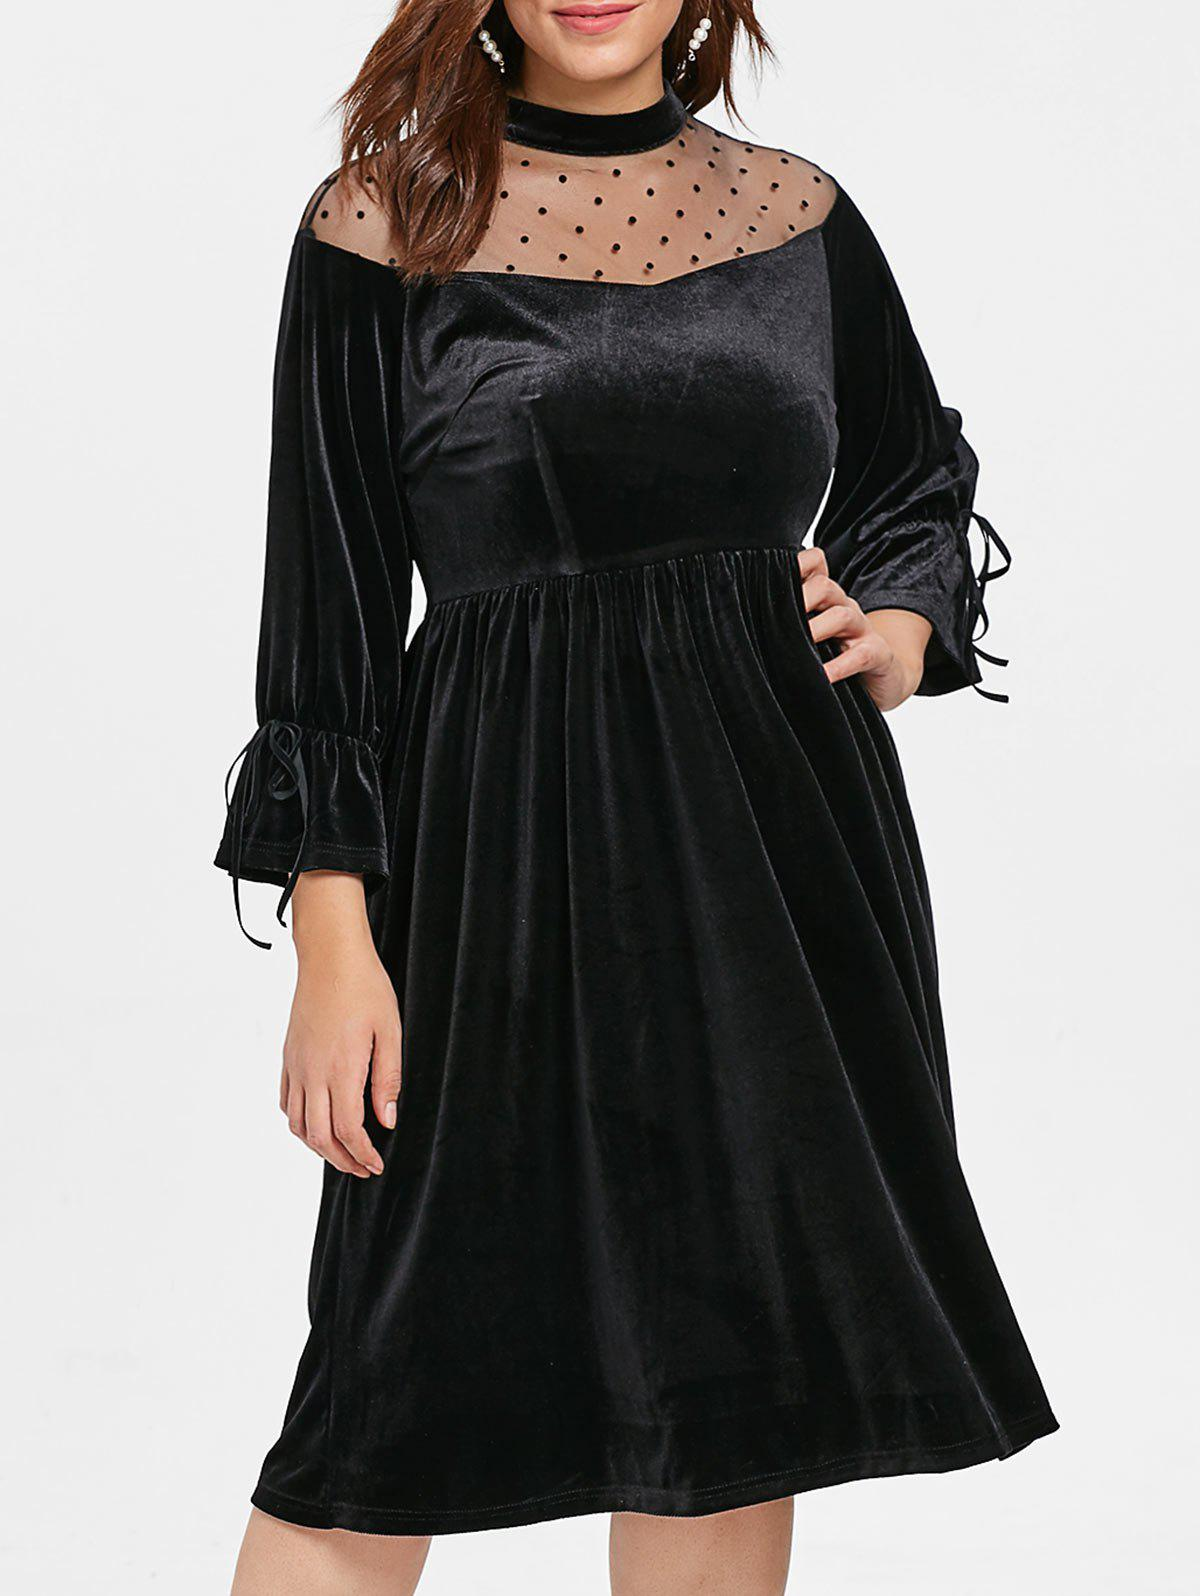 Fancy Plus Size Mesh Yoke Velvet Dress